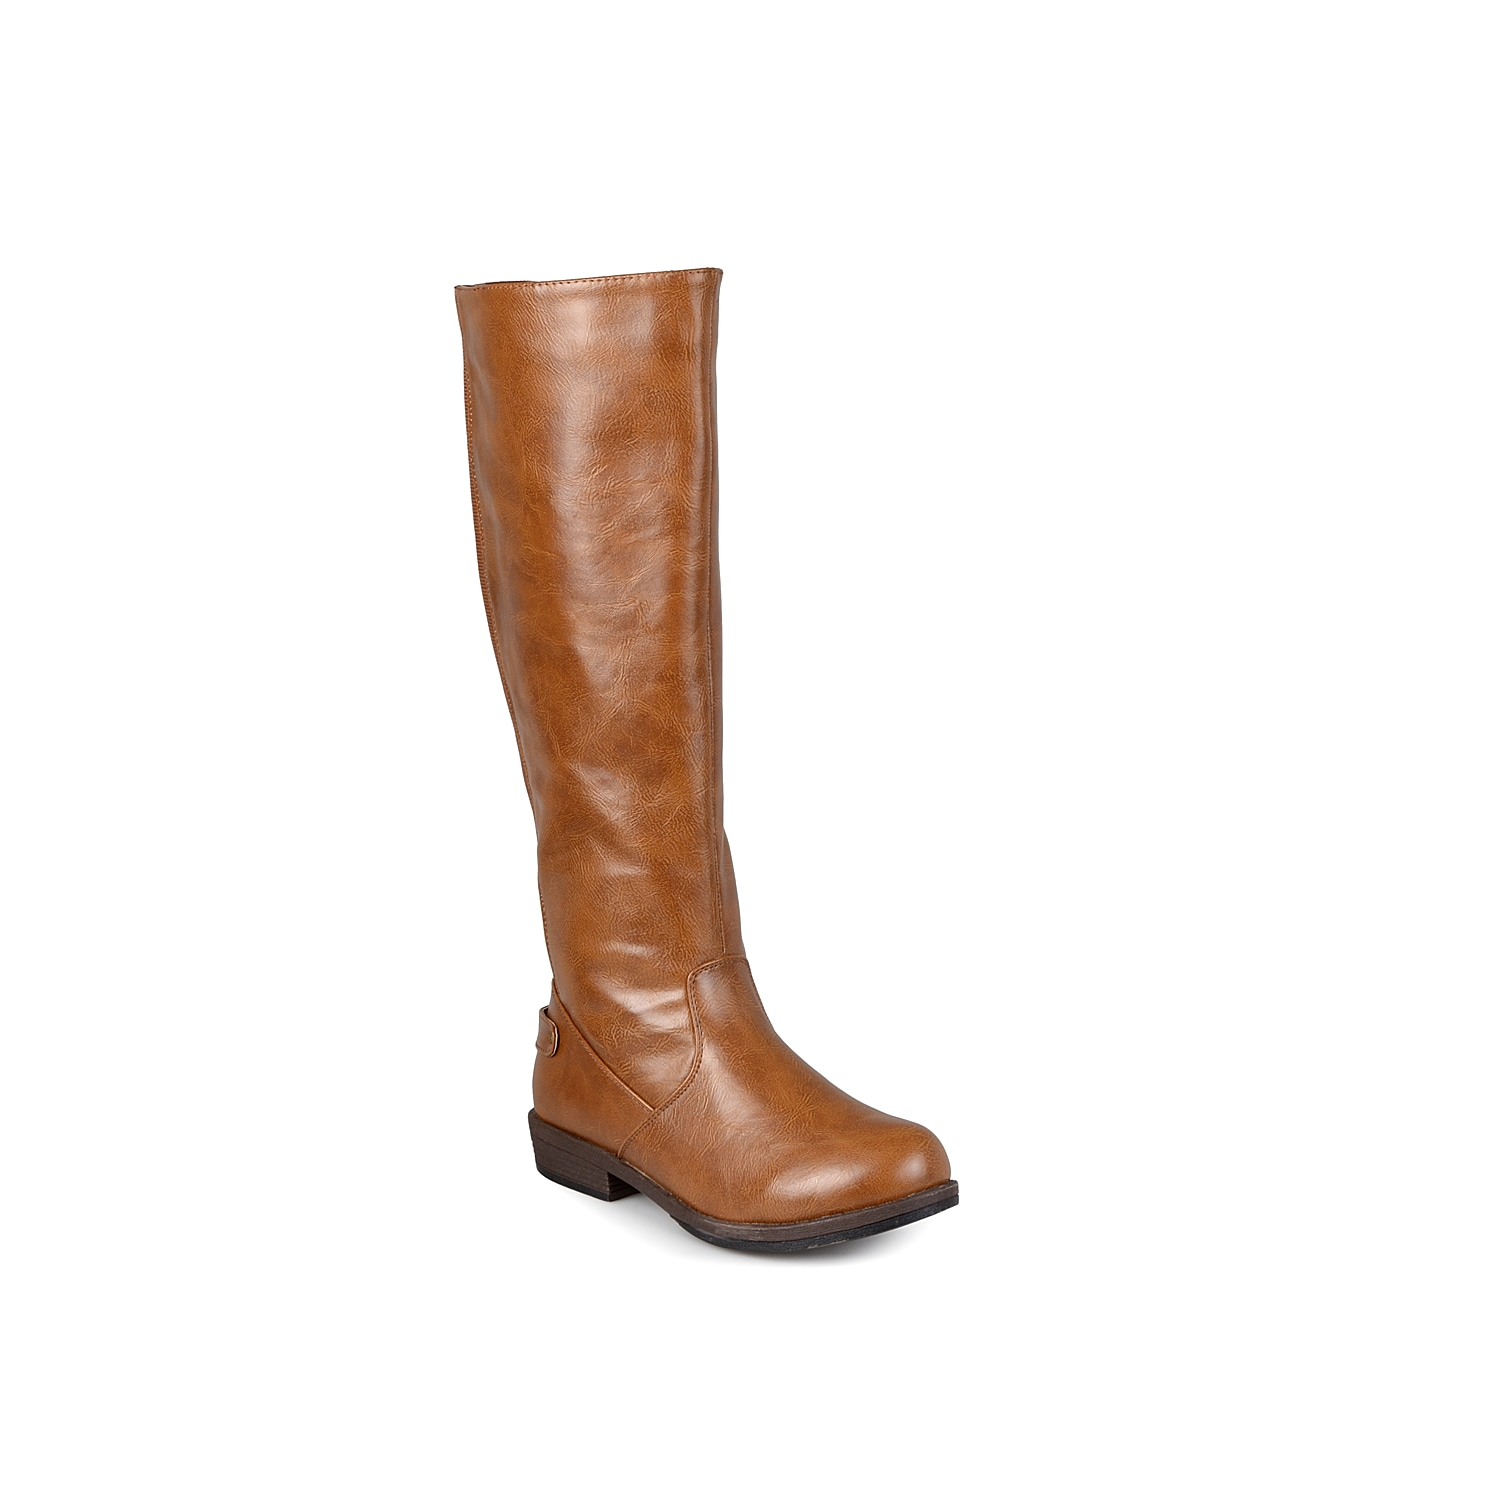 Classic and versatile, the Lynn knee high boot from Journee Collection will become your go-to tall boot pick this season!Click here for Boot Measuring Guide.